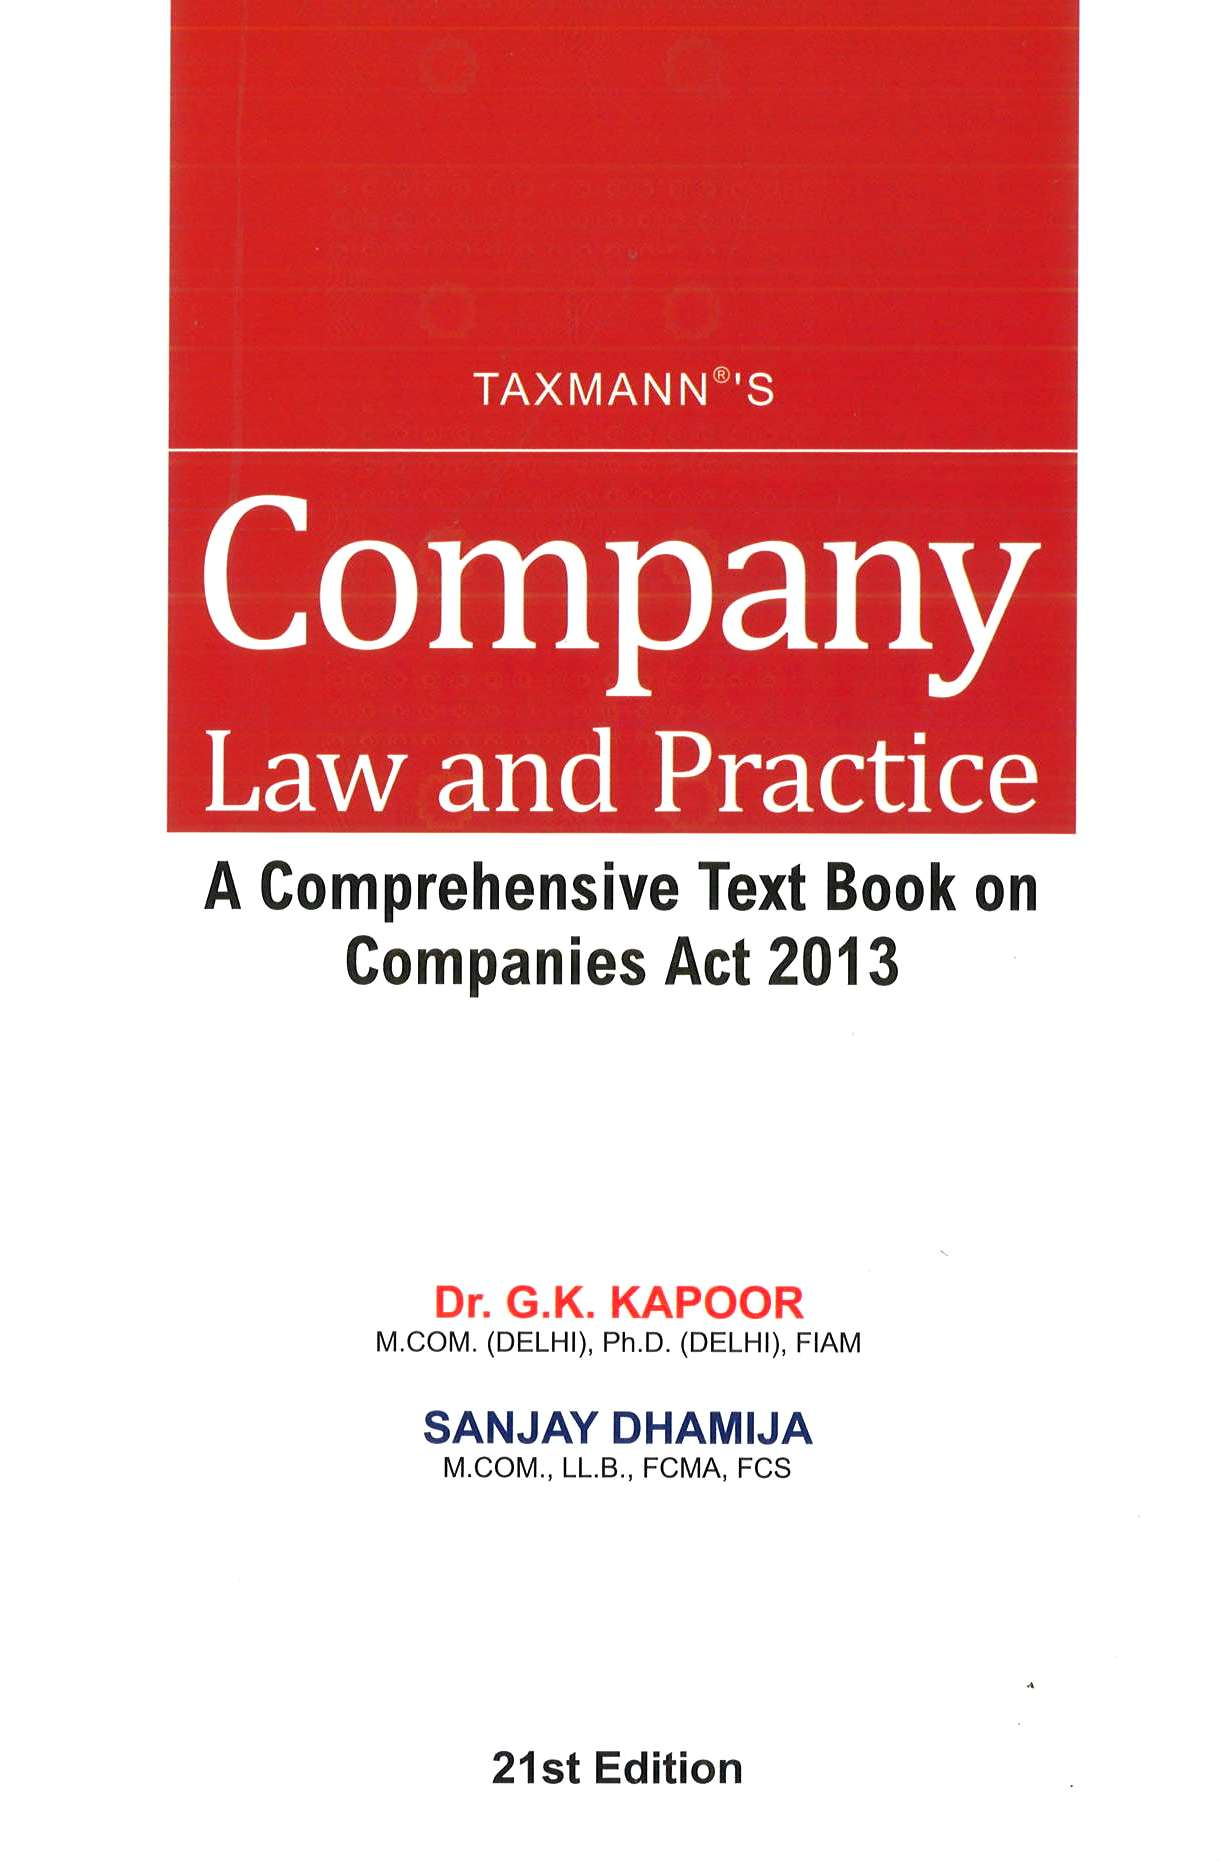 Taxmann Company Law and Practice (A Comprehensive Text Book on Companies Act 2013) for CMA Final and Other Professional Course by Dr. G.K. Kapoor and Sanjay Dhamija (Taxmann Publishing) Edition 21st 2016